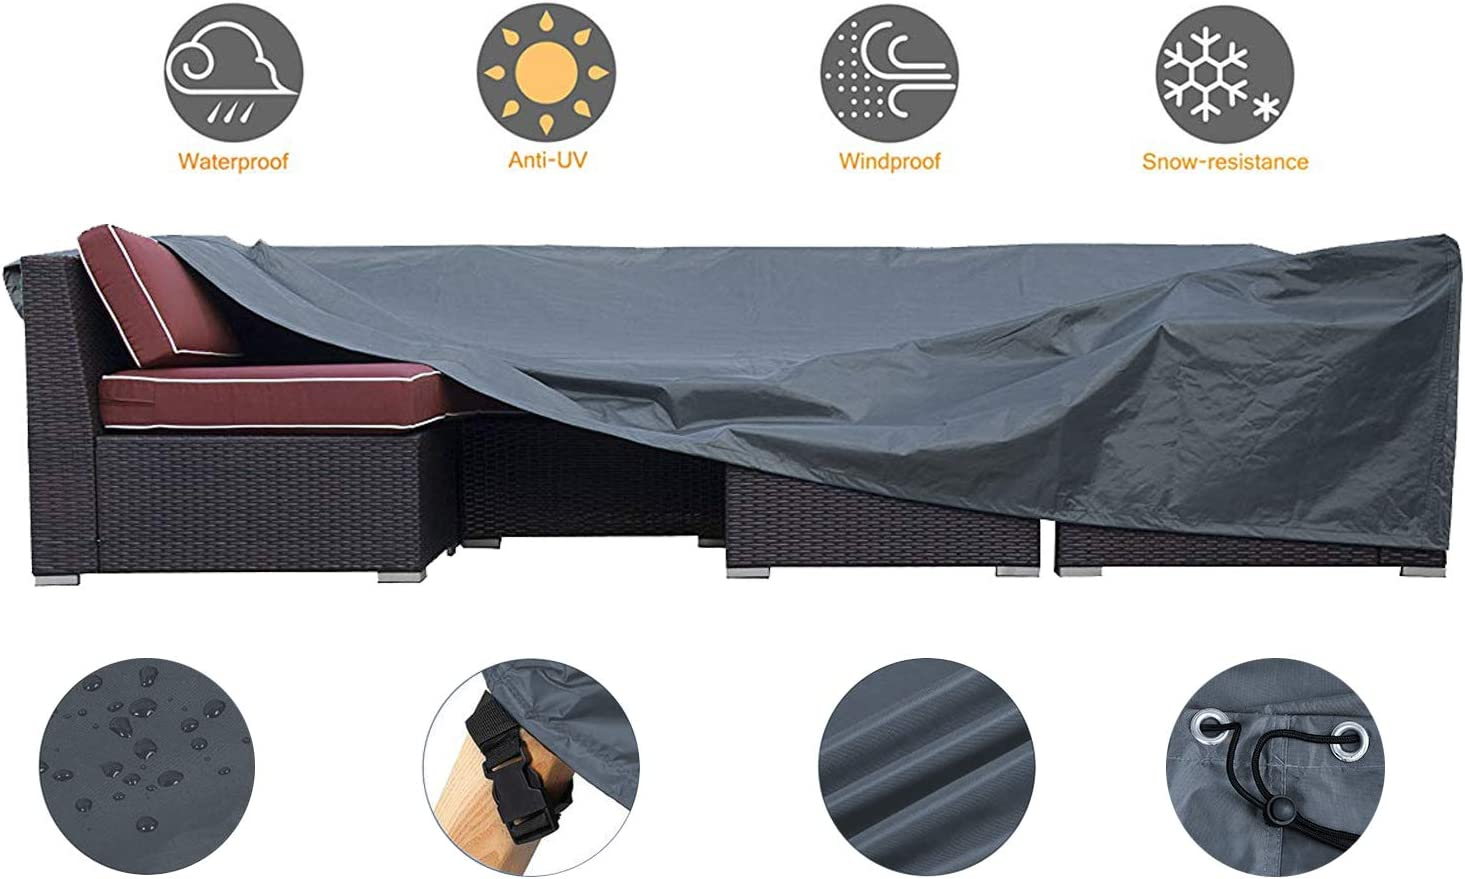 JCGARDEN Patio Furniture Cover, Extra Large Waterproof Outdoor Furniture Cover, Heavy Duty Outdoor Sectional Furniture Couch Cover 126L x 64W x 29H inch